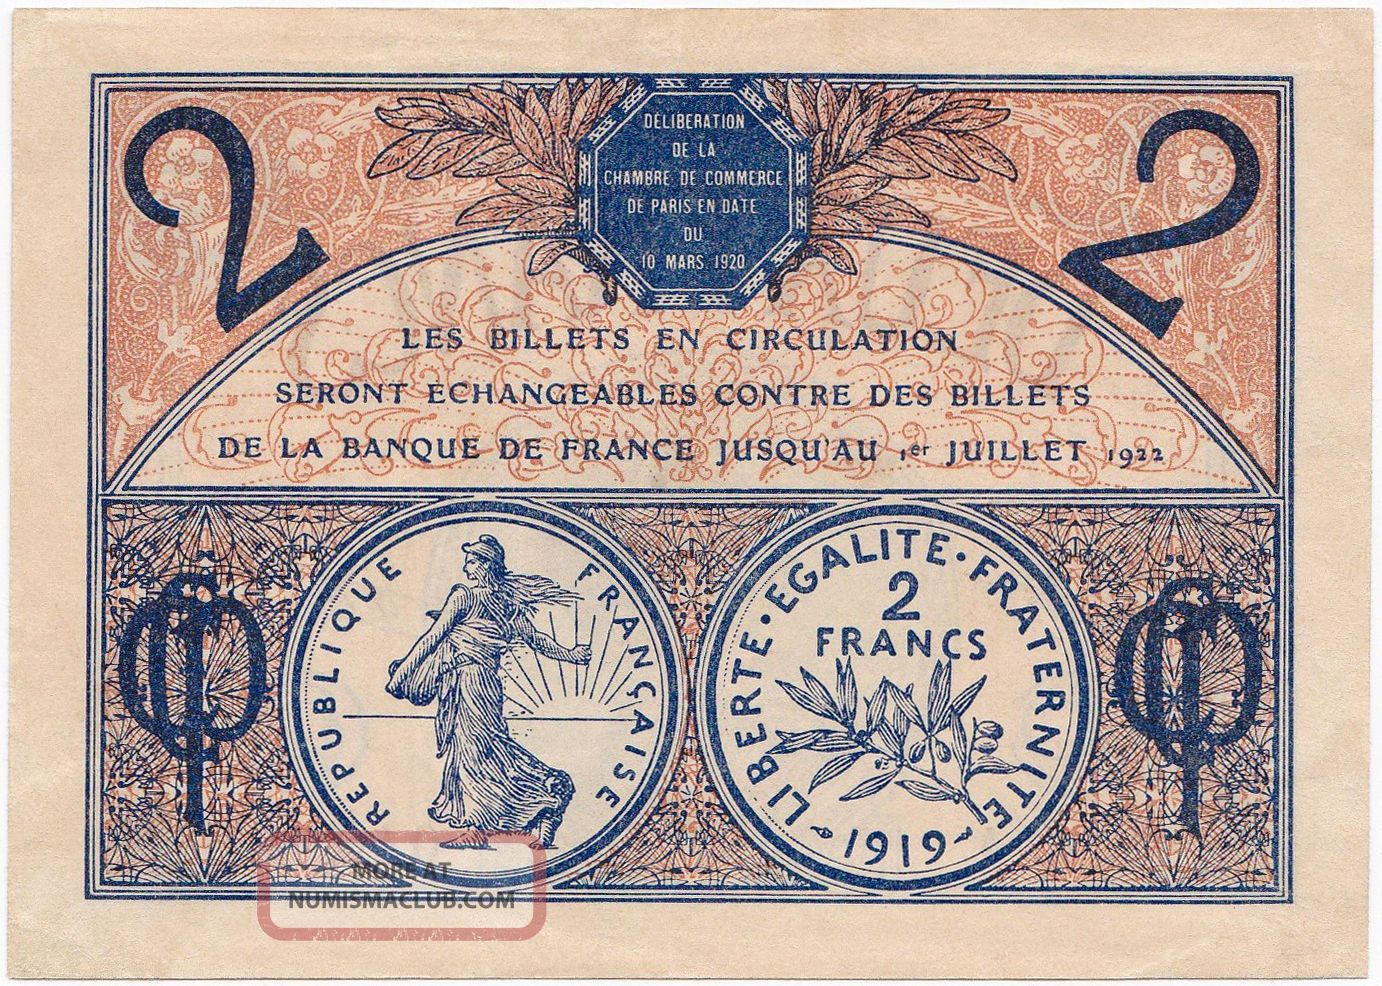 France 2 francs 1919 1922 xf chambre de commerce de paris for Chambre de commerces